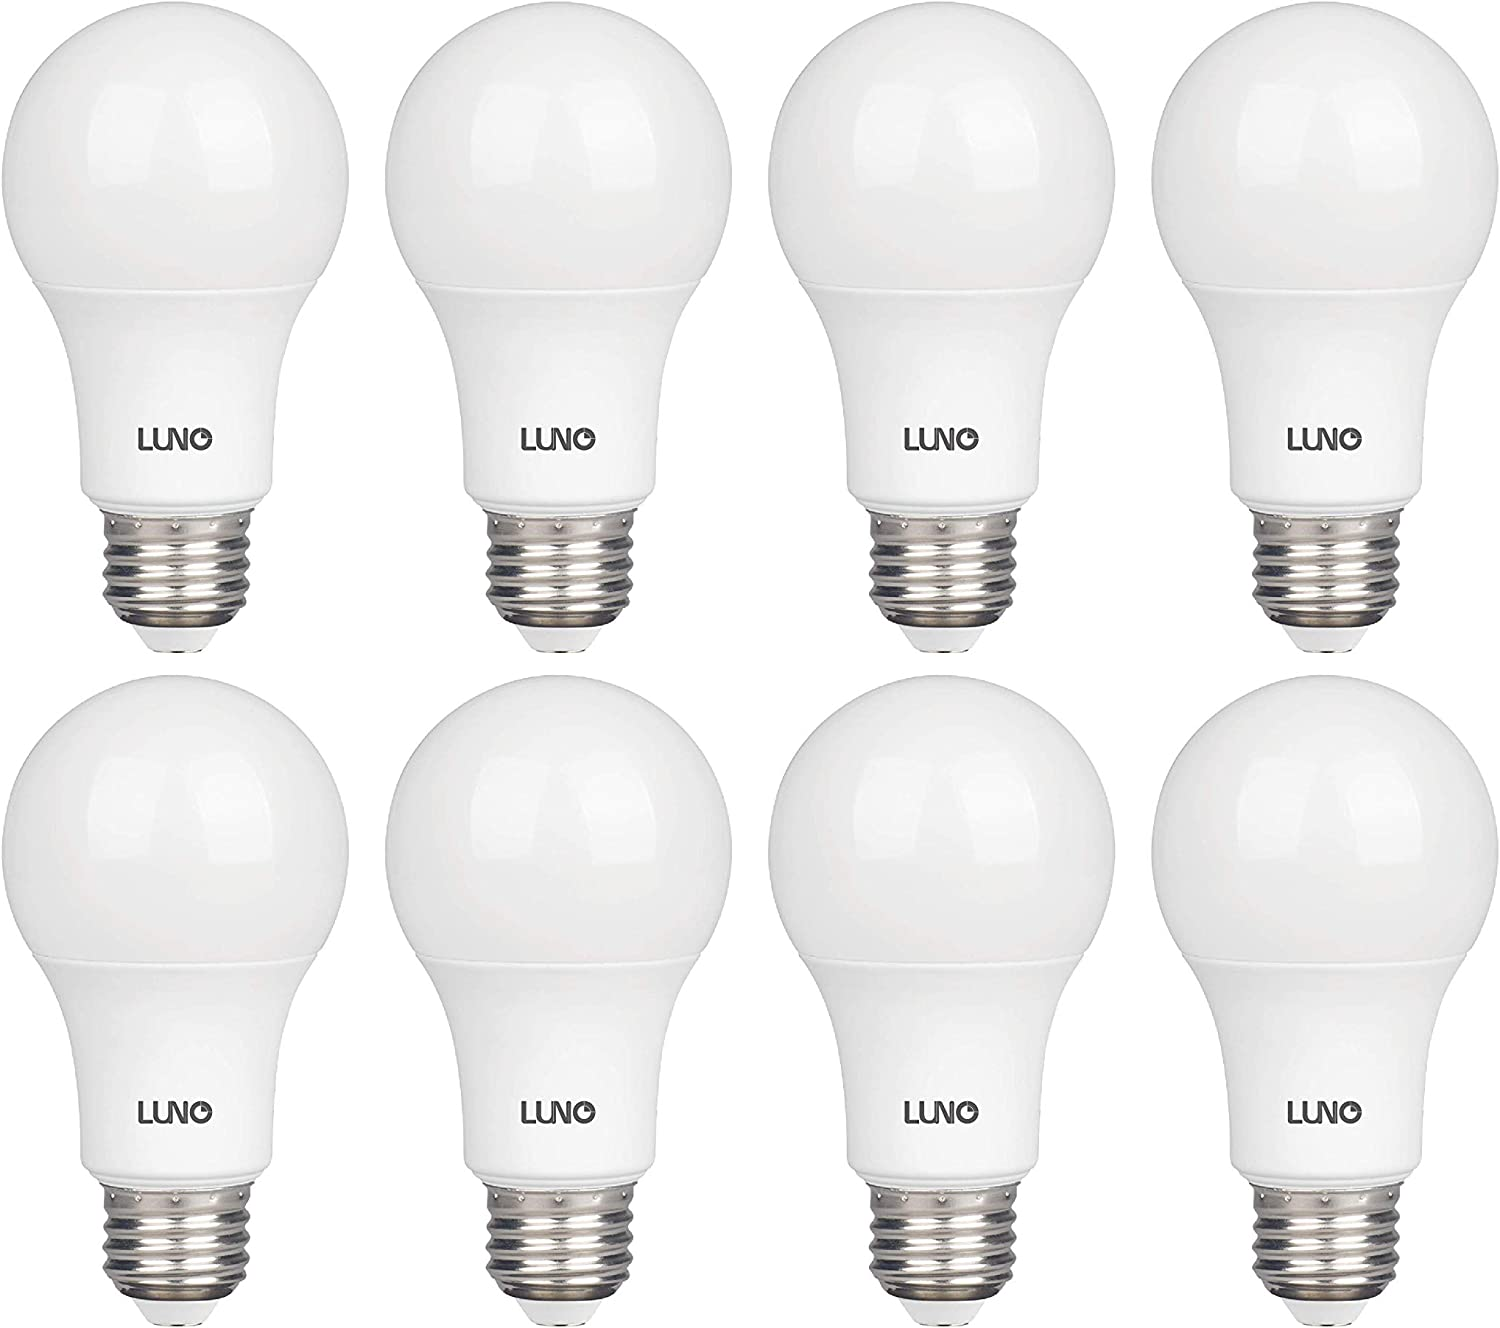 LUNO A19 Non-Dimmable LED Bulb, 6.0W (40W Equivalent), 450 Lumens, 4000K (Neutral White), Medium Base (E26), UL Certified (8-Pack)